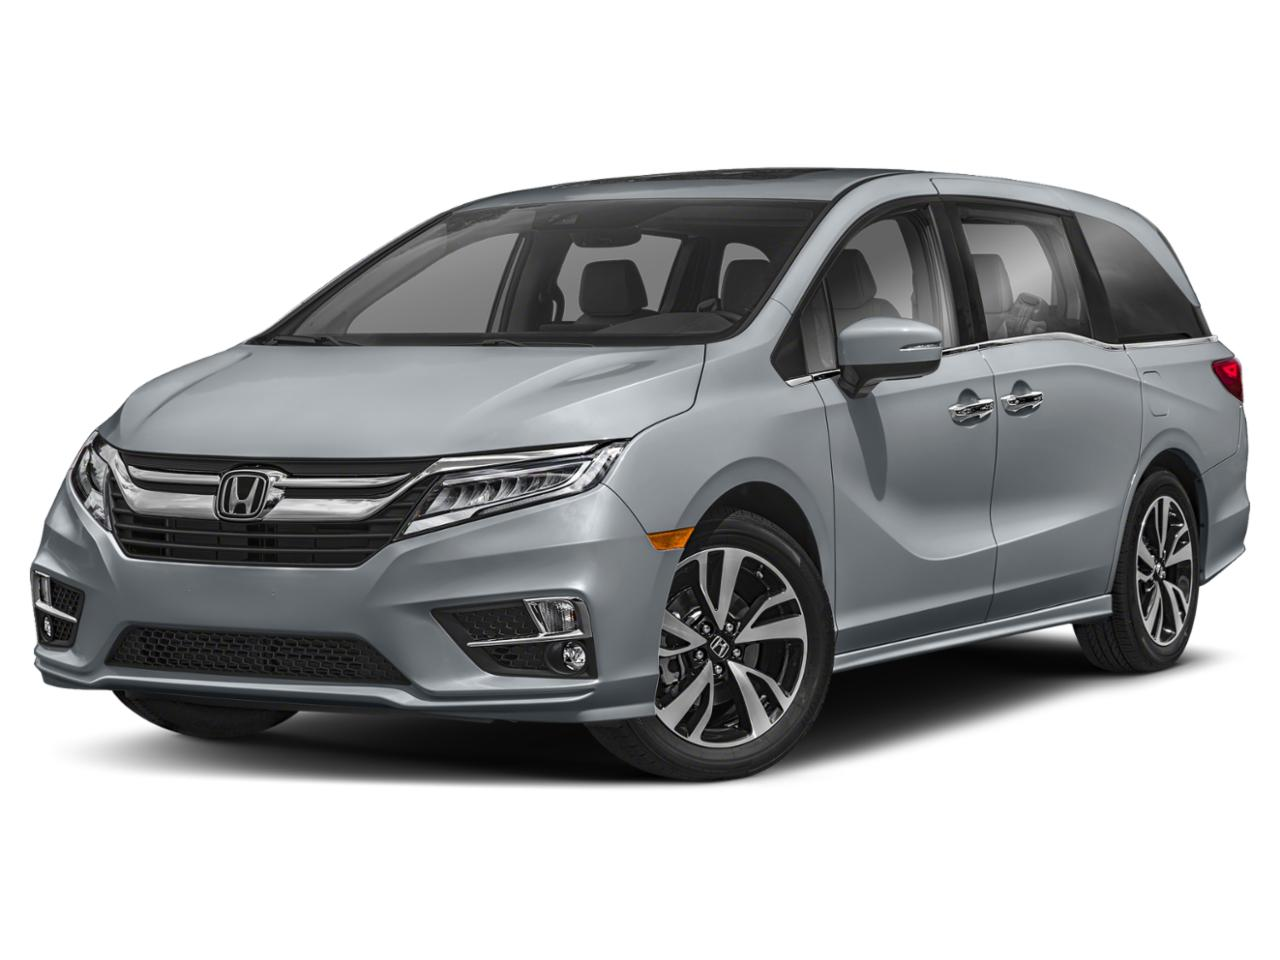 2019 Honda Odyssey Vehicle Photo in Owensboro, KY 42303